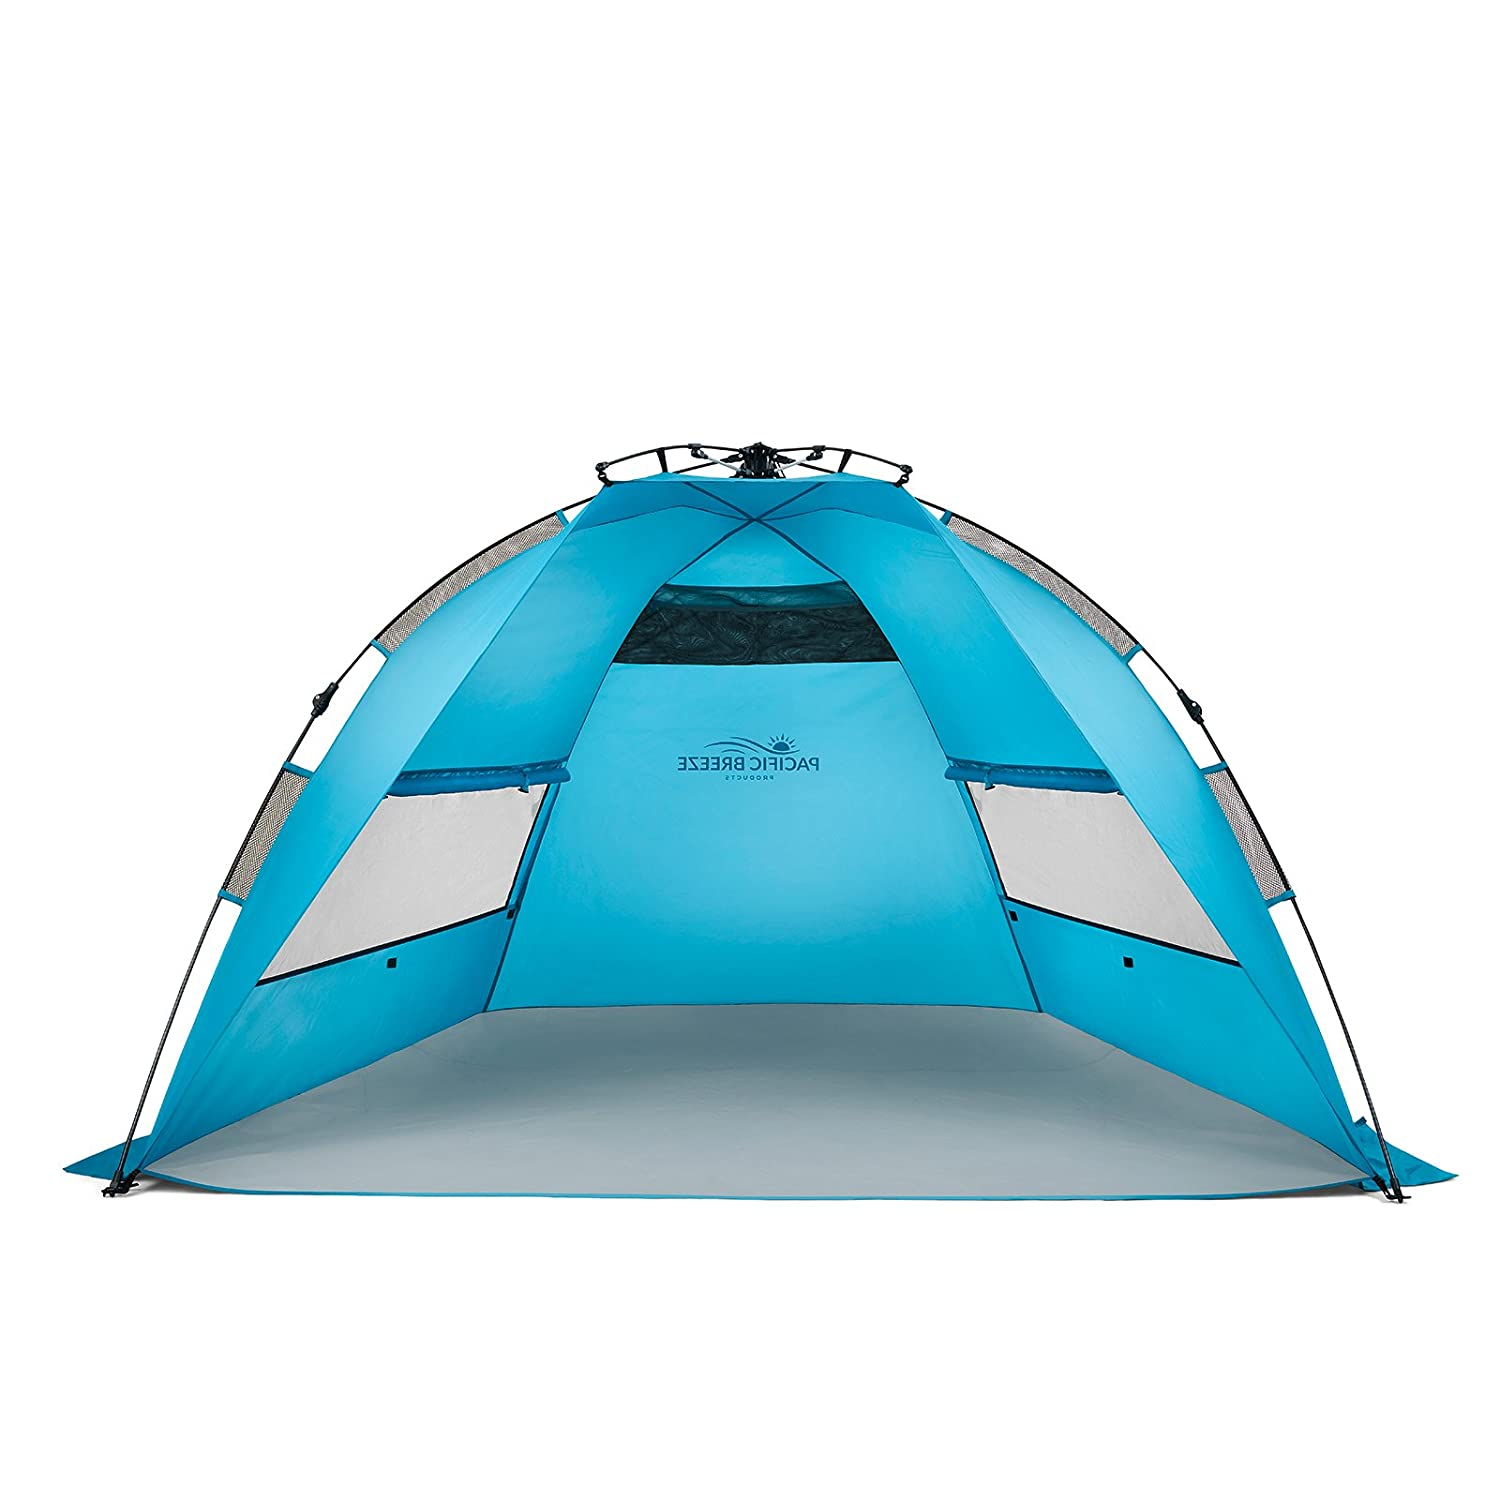 sc 1 st  Amazon.com & Amazon.com: Pacific Breeze Easy Up Beach Tent: Sports u0026 Outdoors